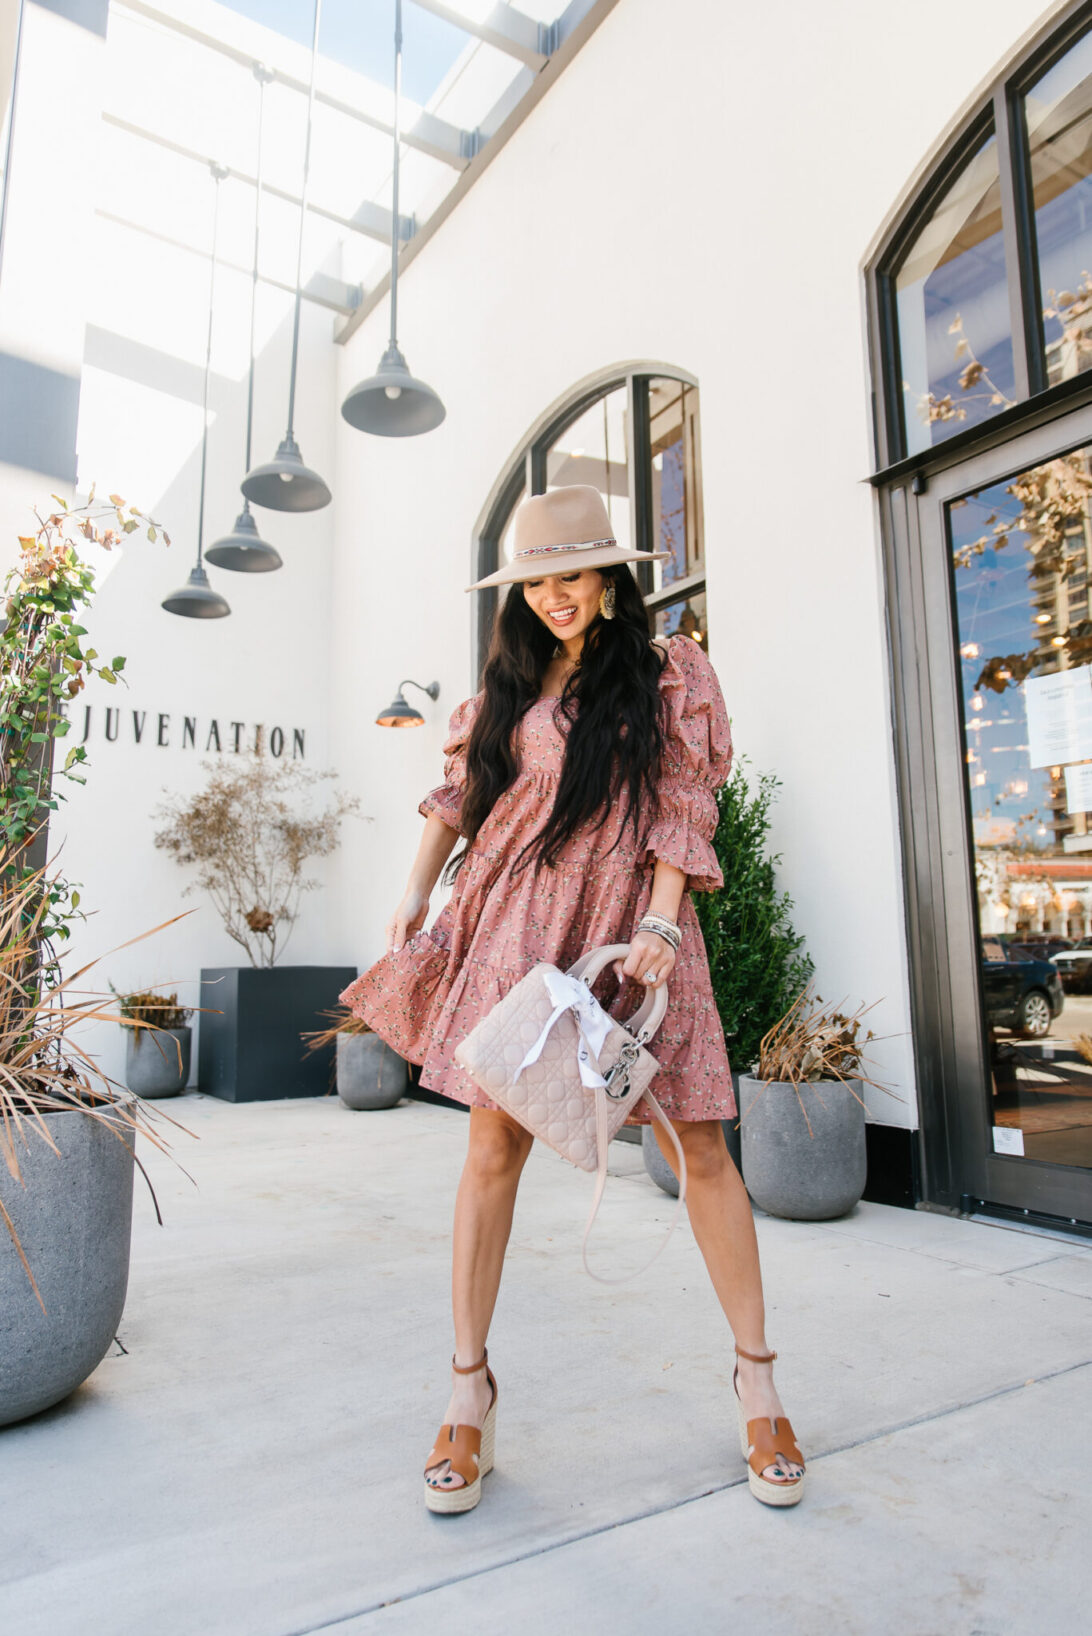 Spring Style Event Sale, puffy sleeves, country dress, floral dress, Lady Dior pink bag